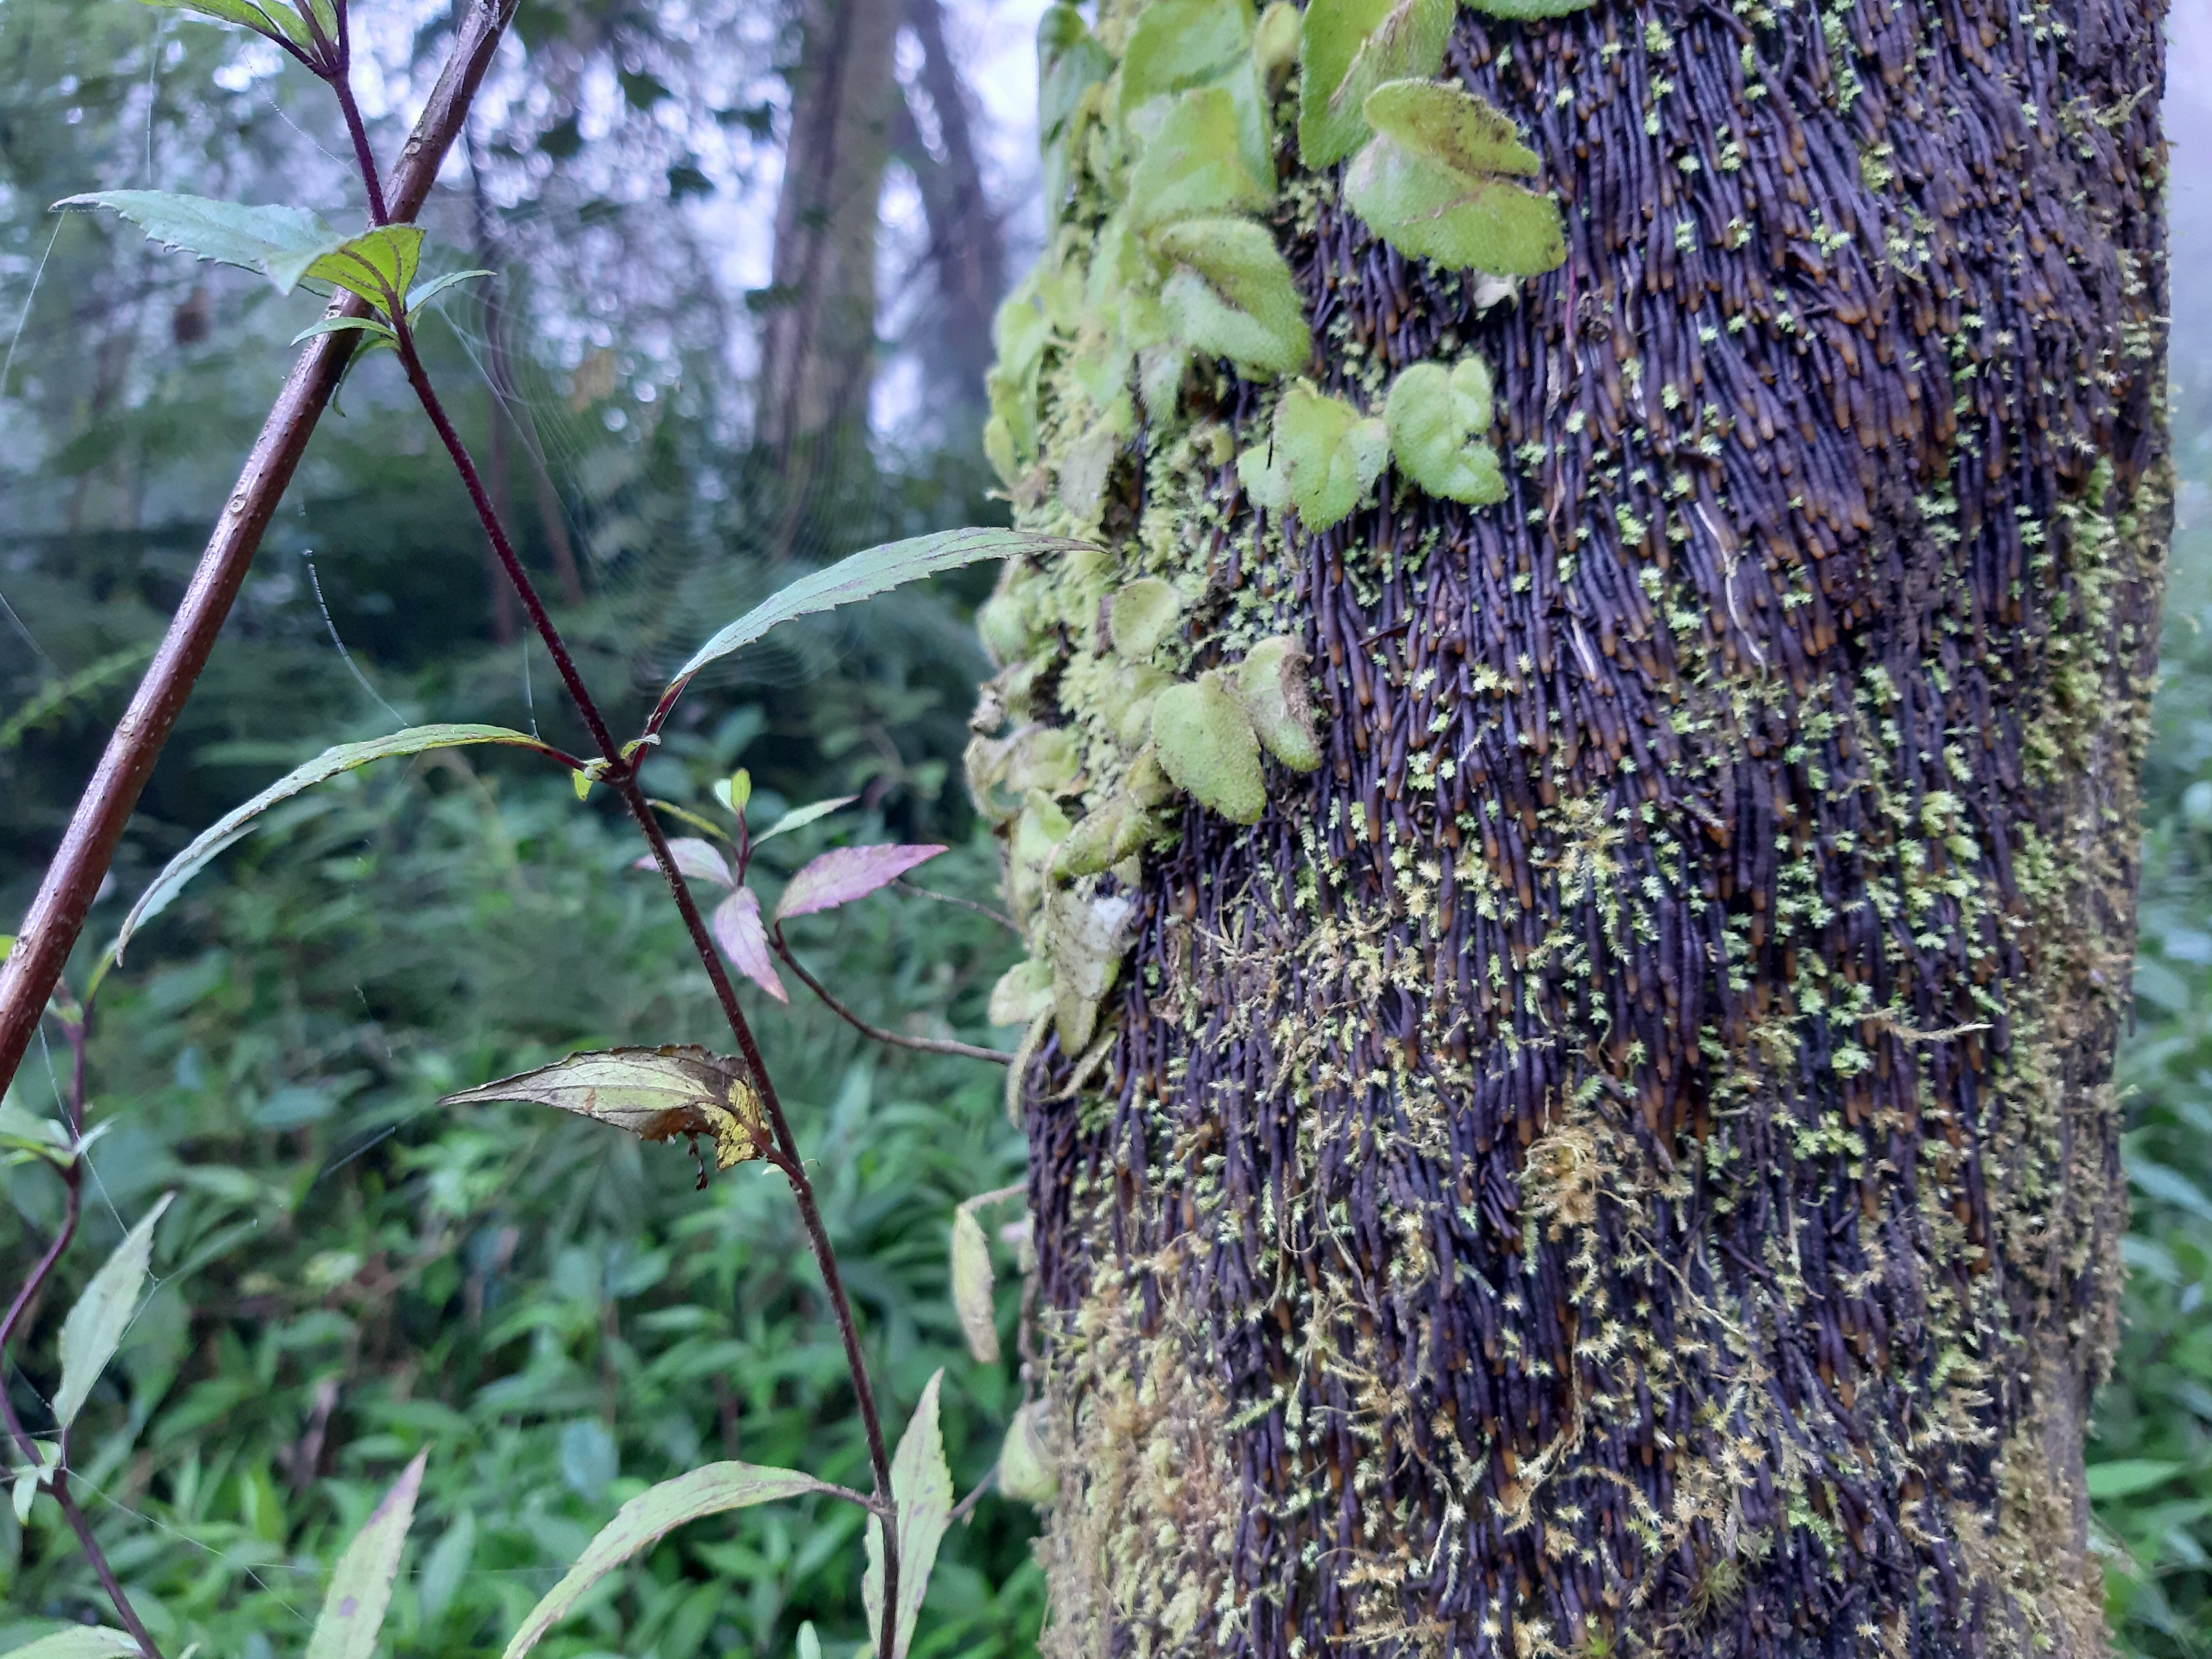 Lichen growing on a tree, cobwebs, greenery. This photo has it all.